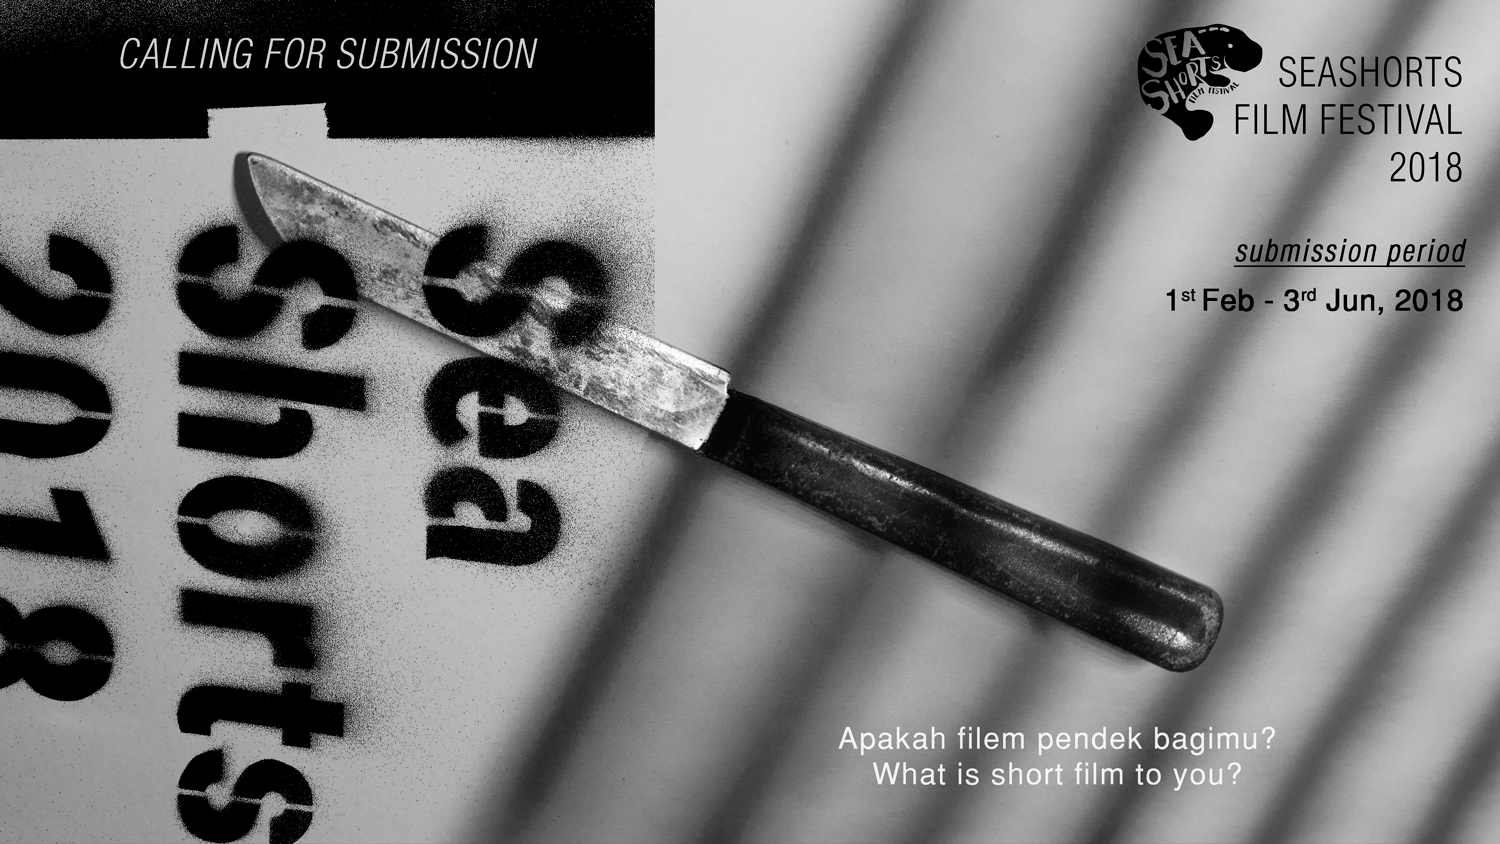 01-Knife_Call-for-Submission_Poster.jpg